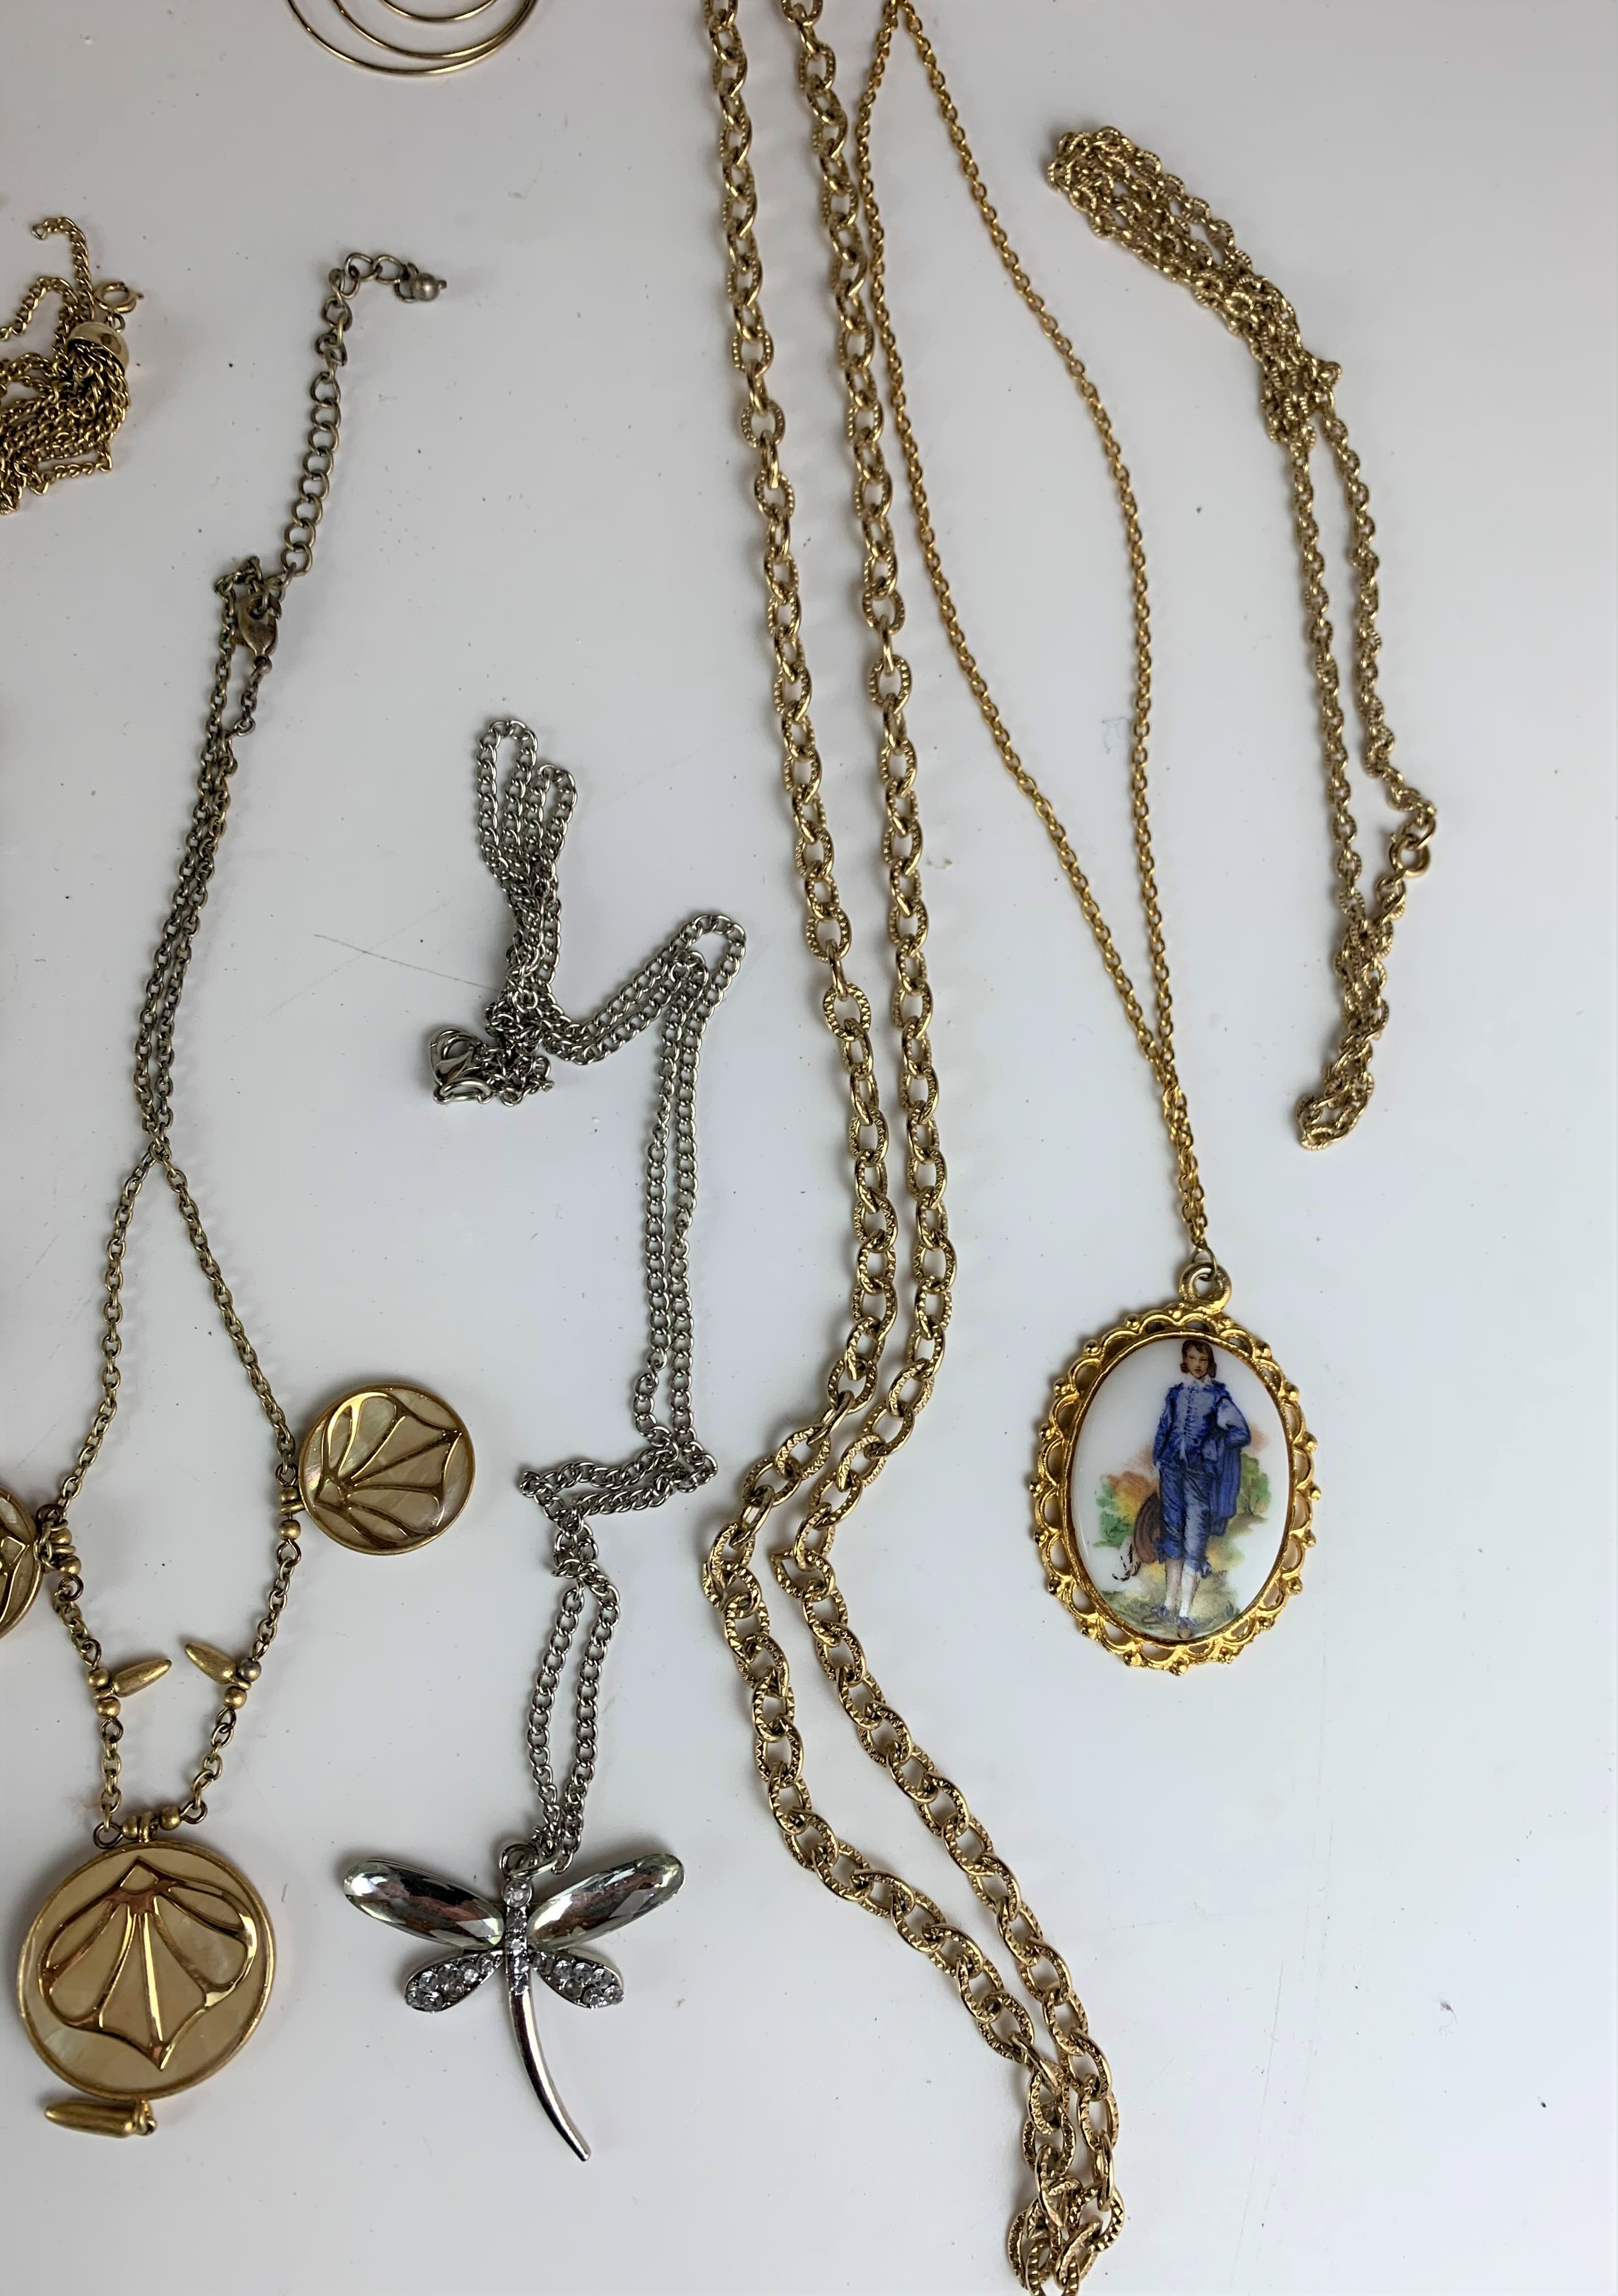 Large bag of assorted dress jewellery including watches, necklaces, bracelets, brooches etc. - Image 8 of 10